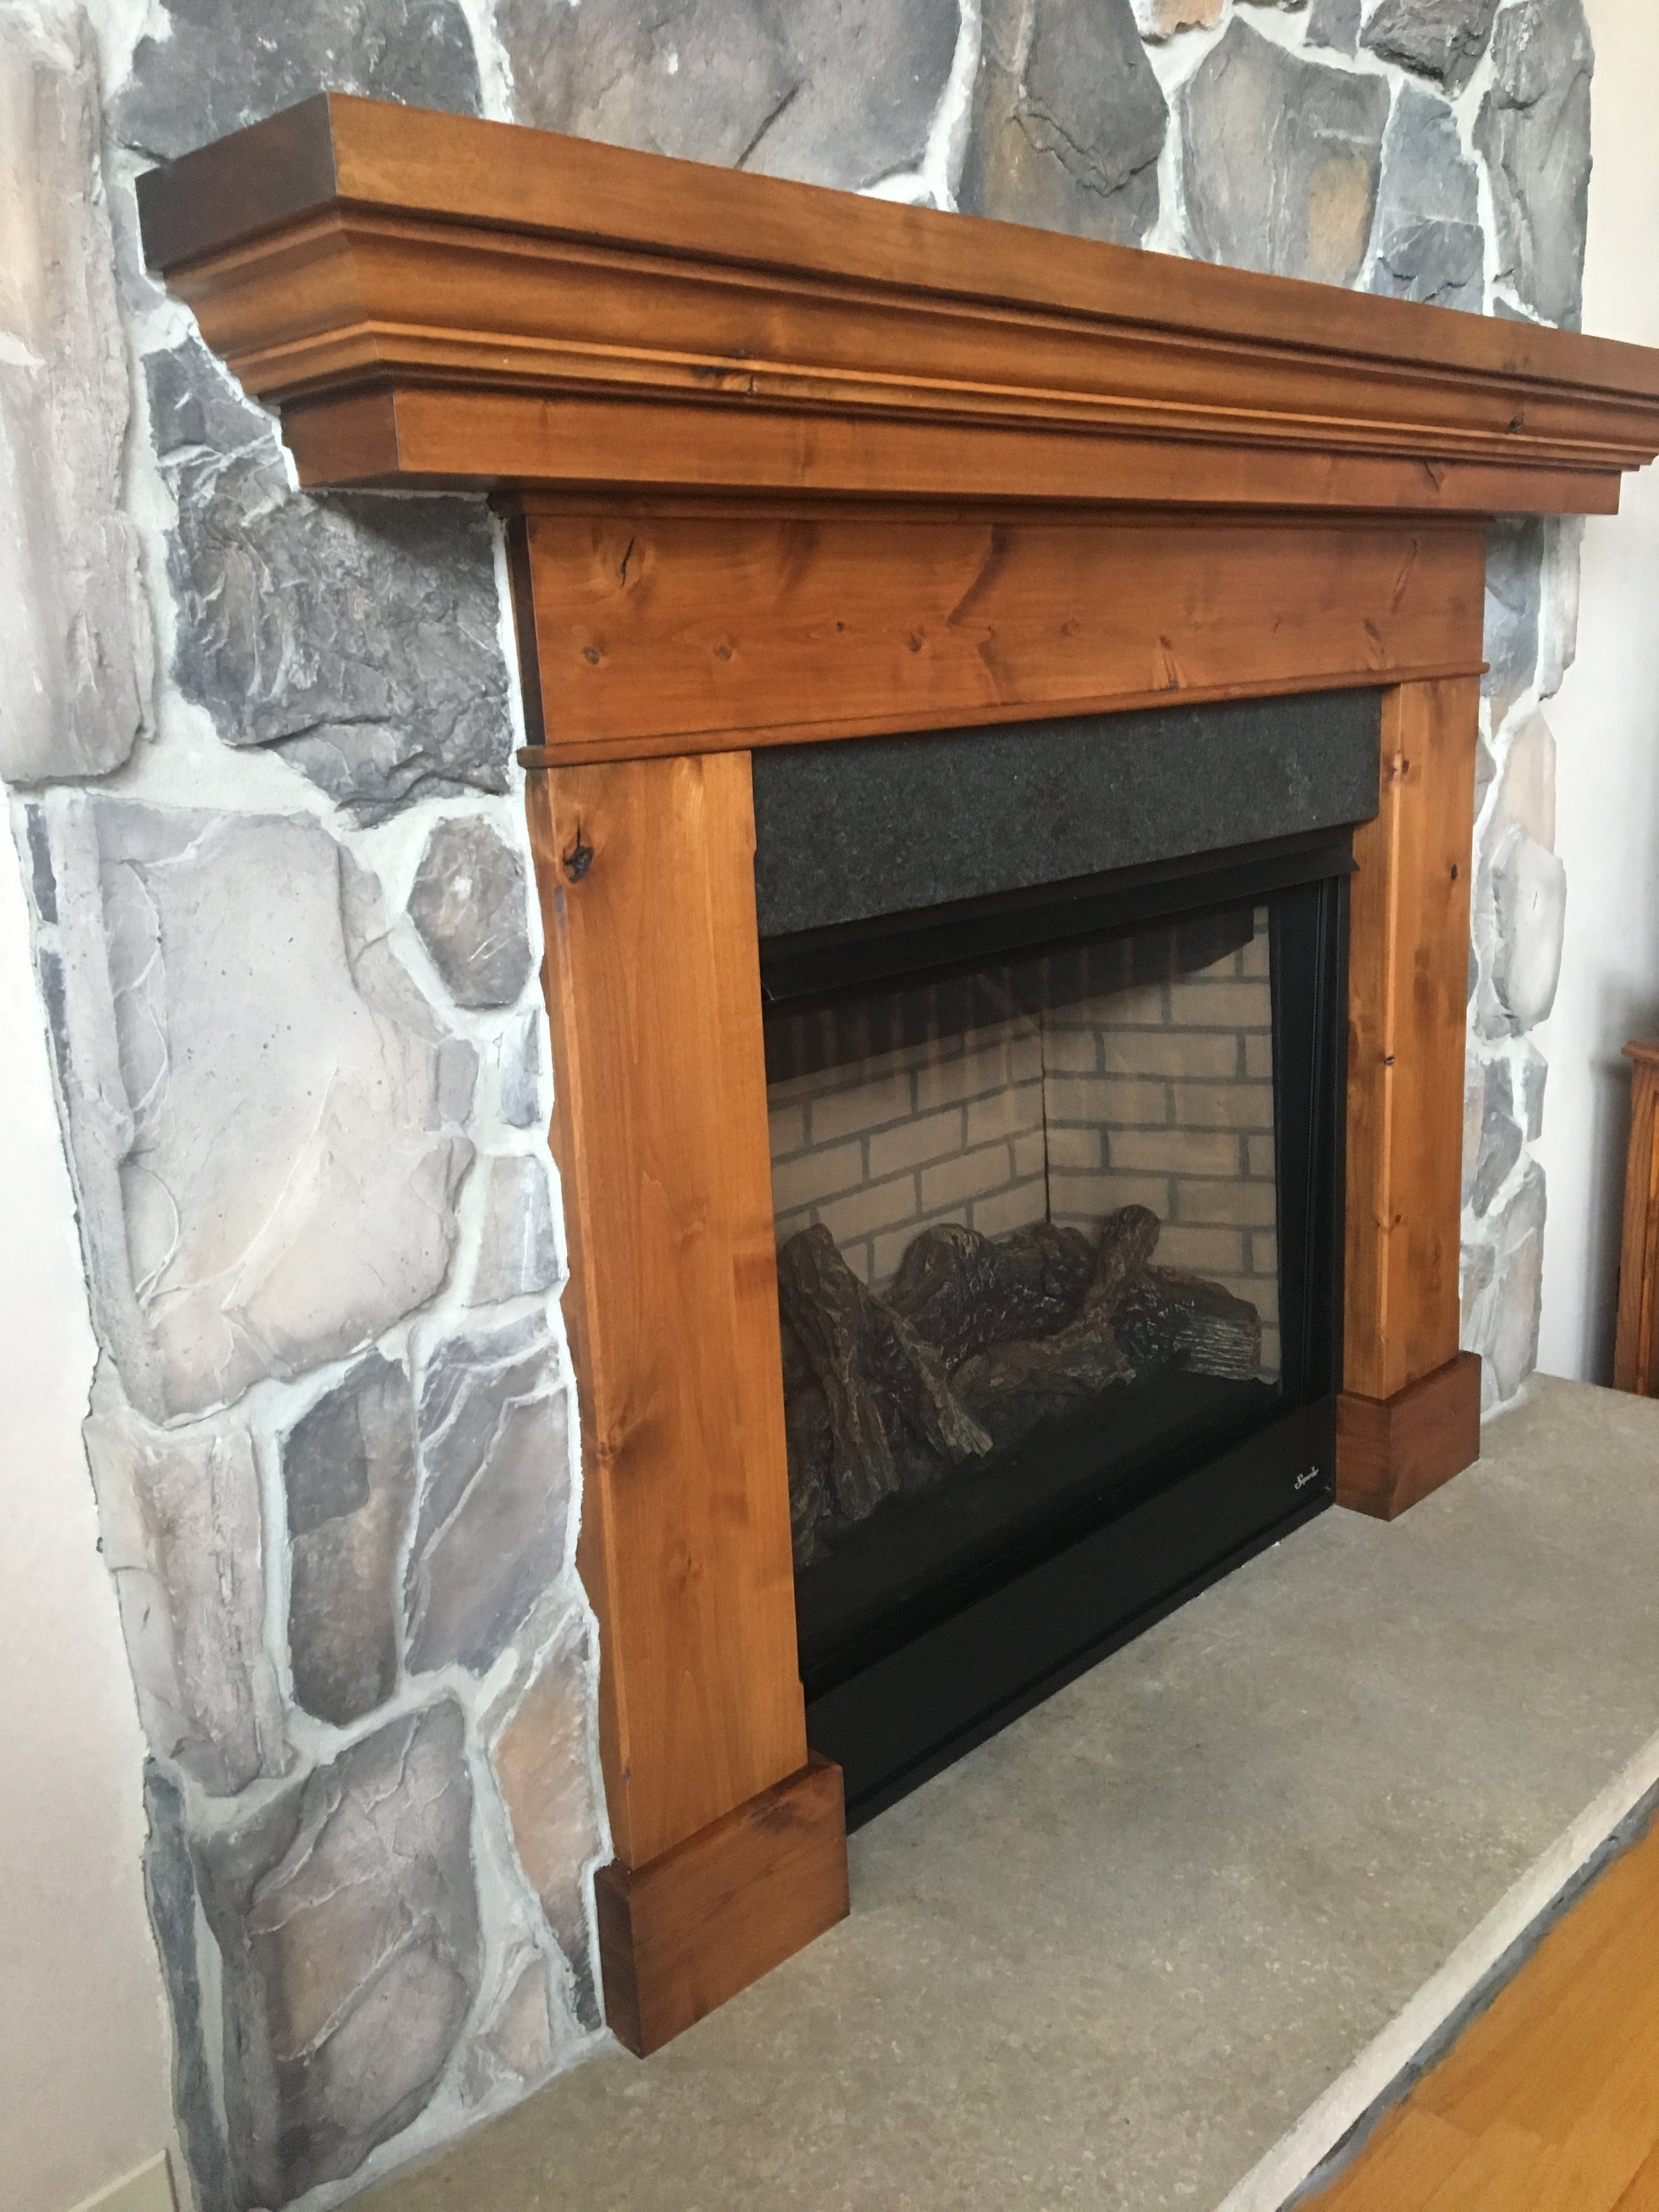 Fireplace Surround and Mantel Detail